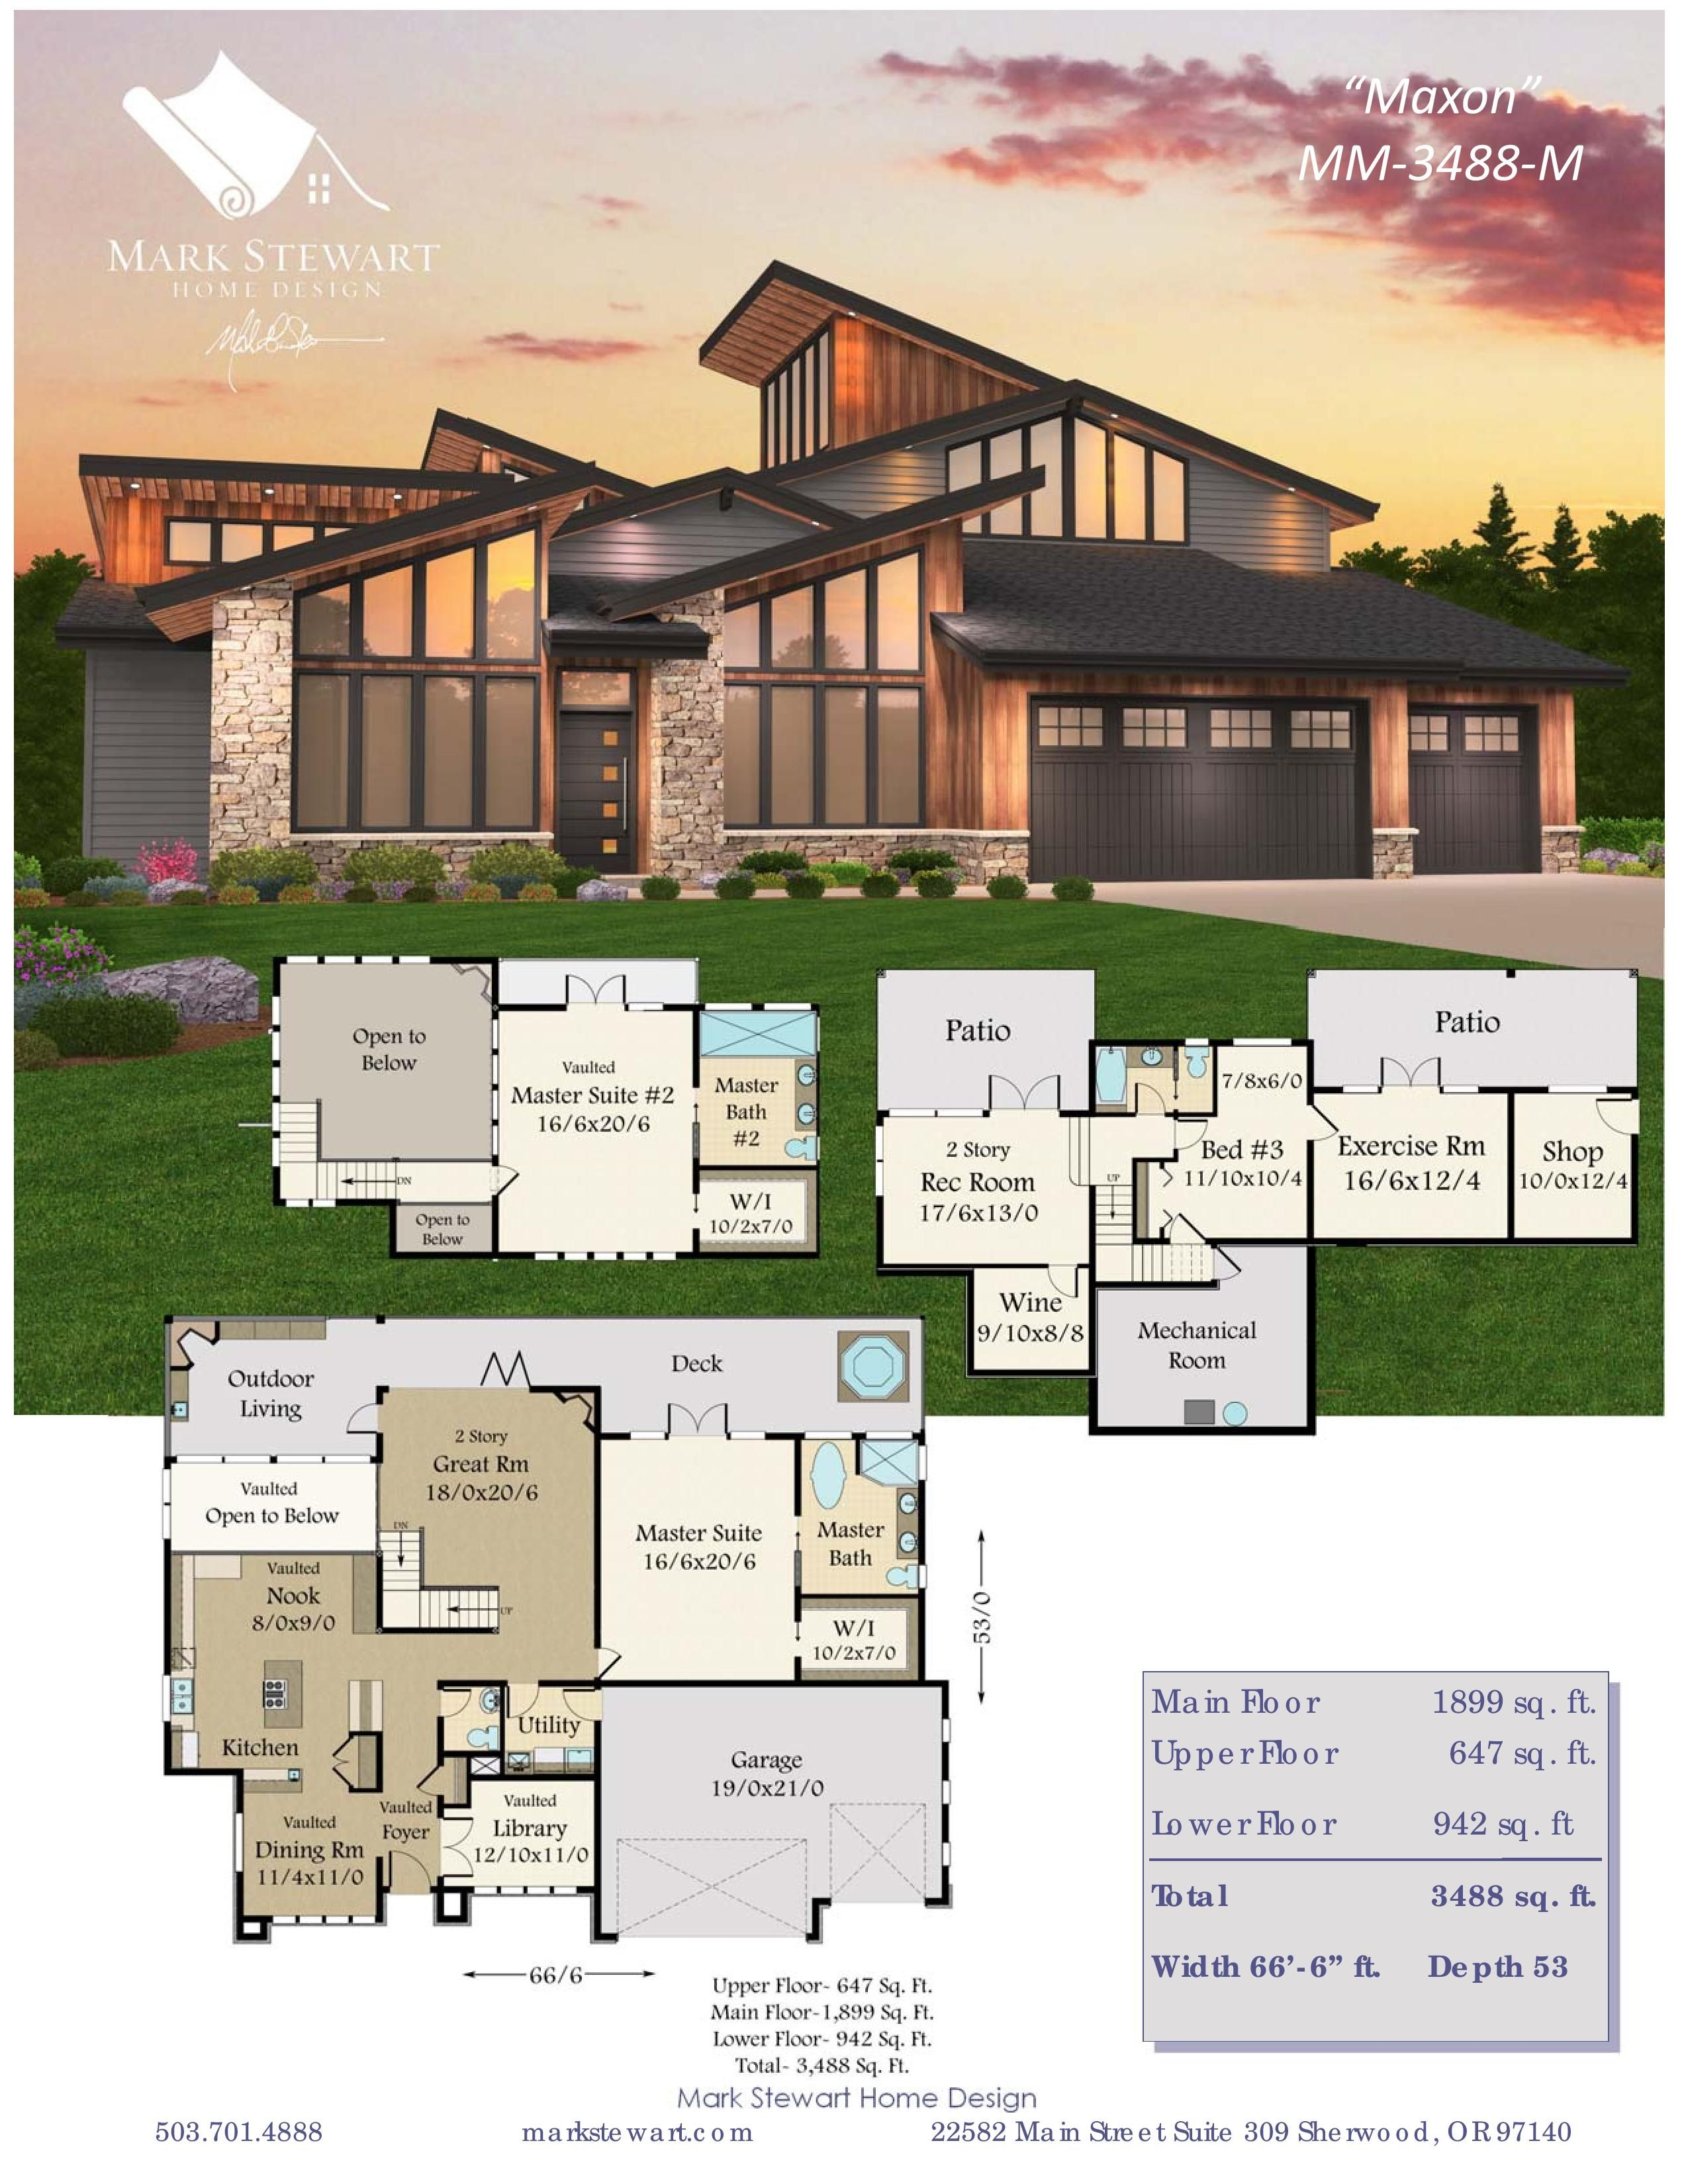 Maxon Two Master Suites Modern Style House Plans Sims House Design Sims House Plans